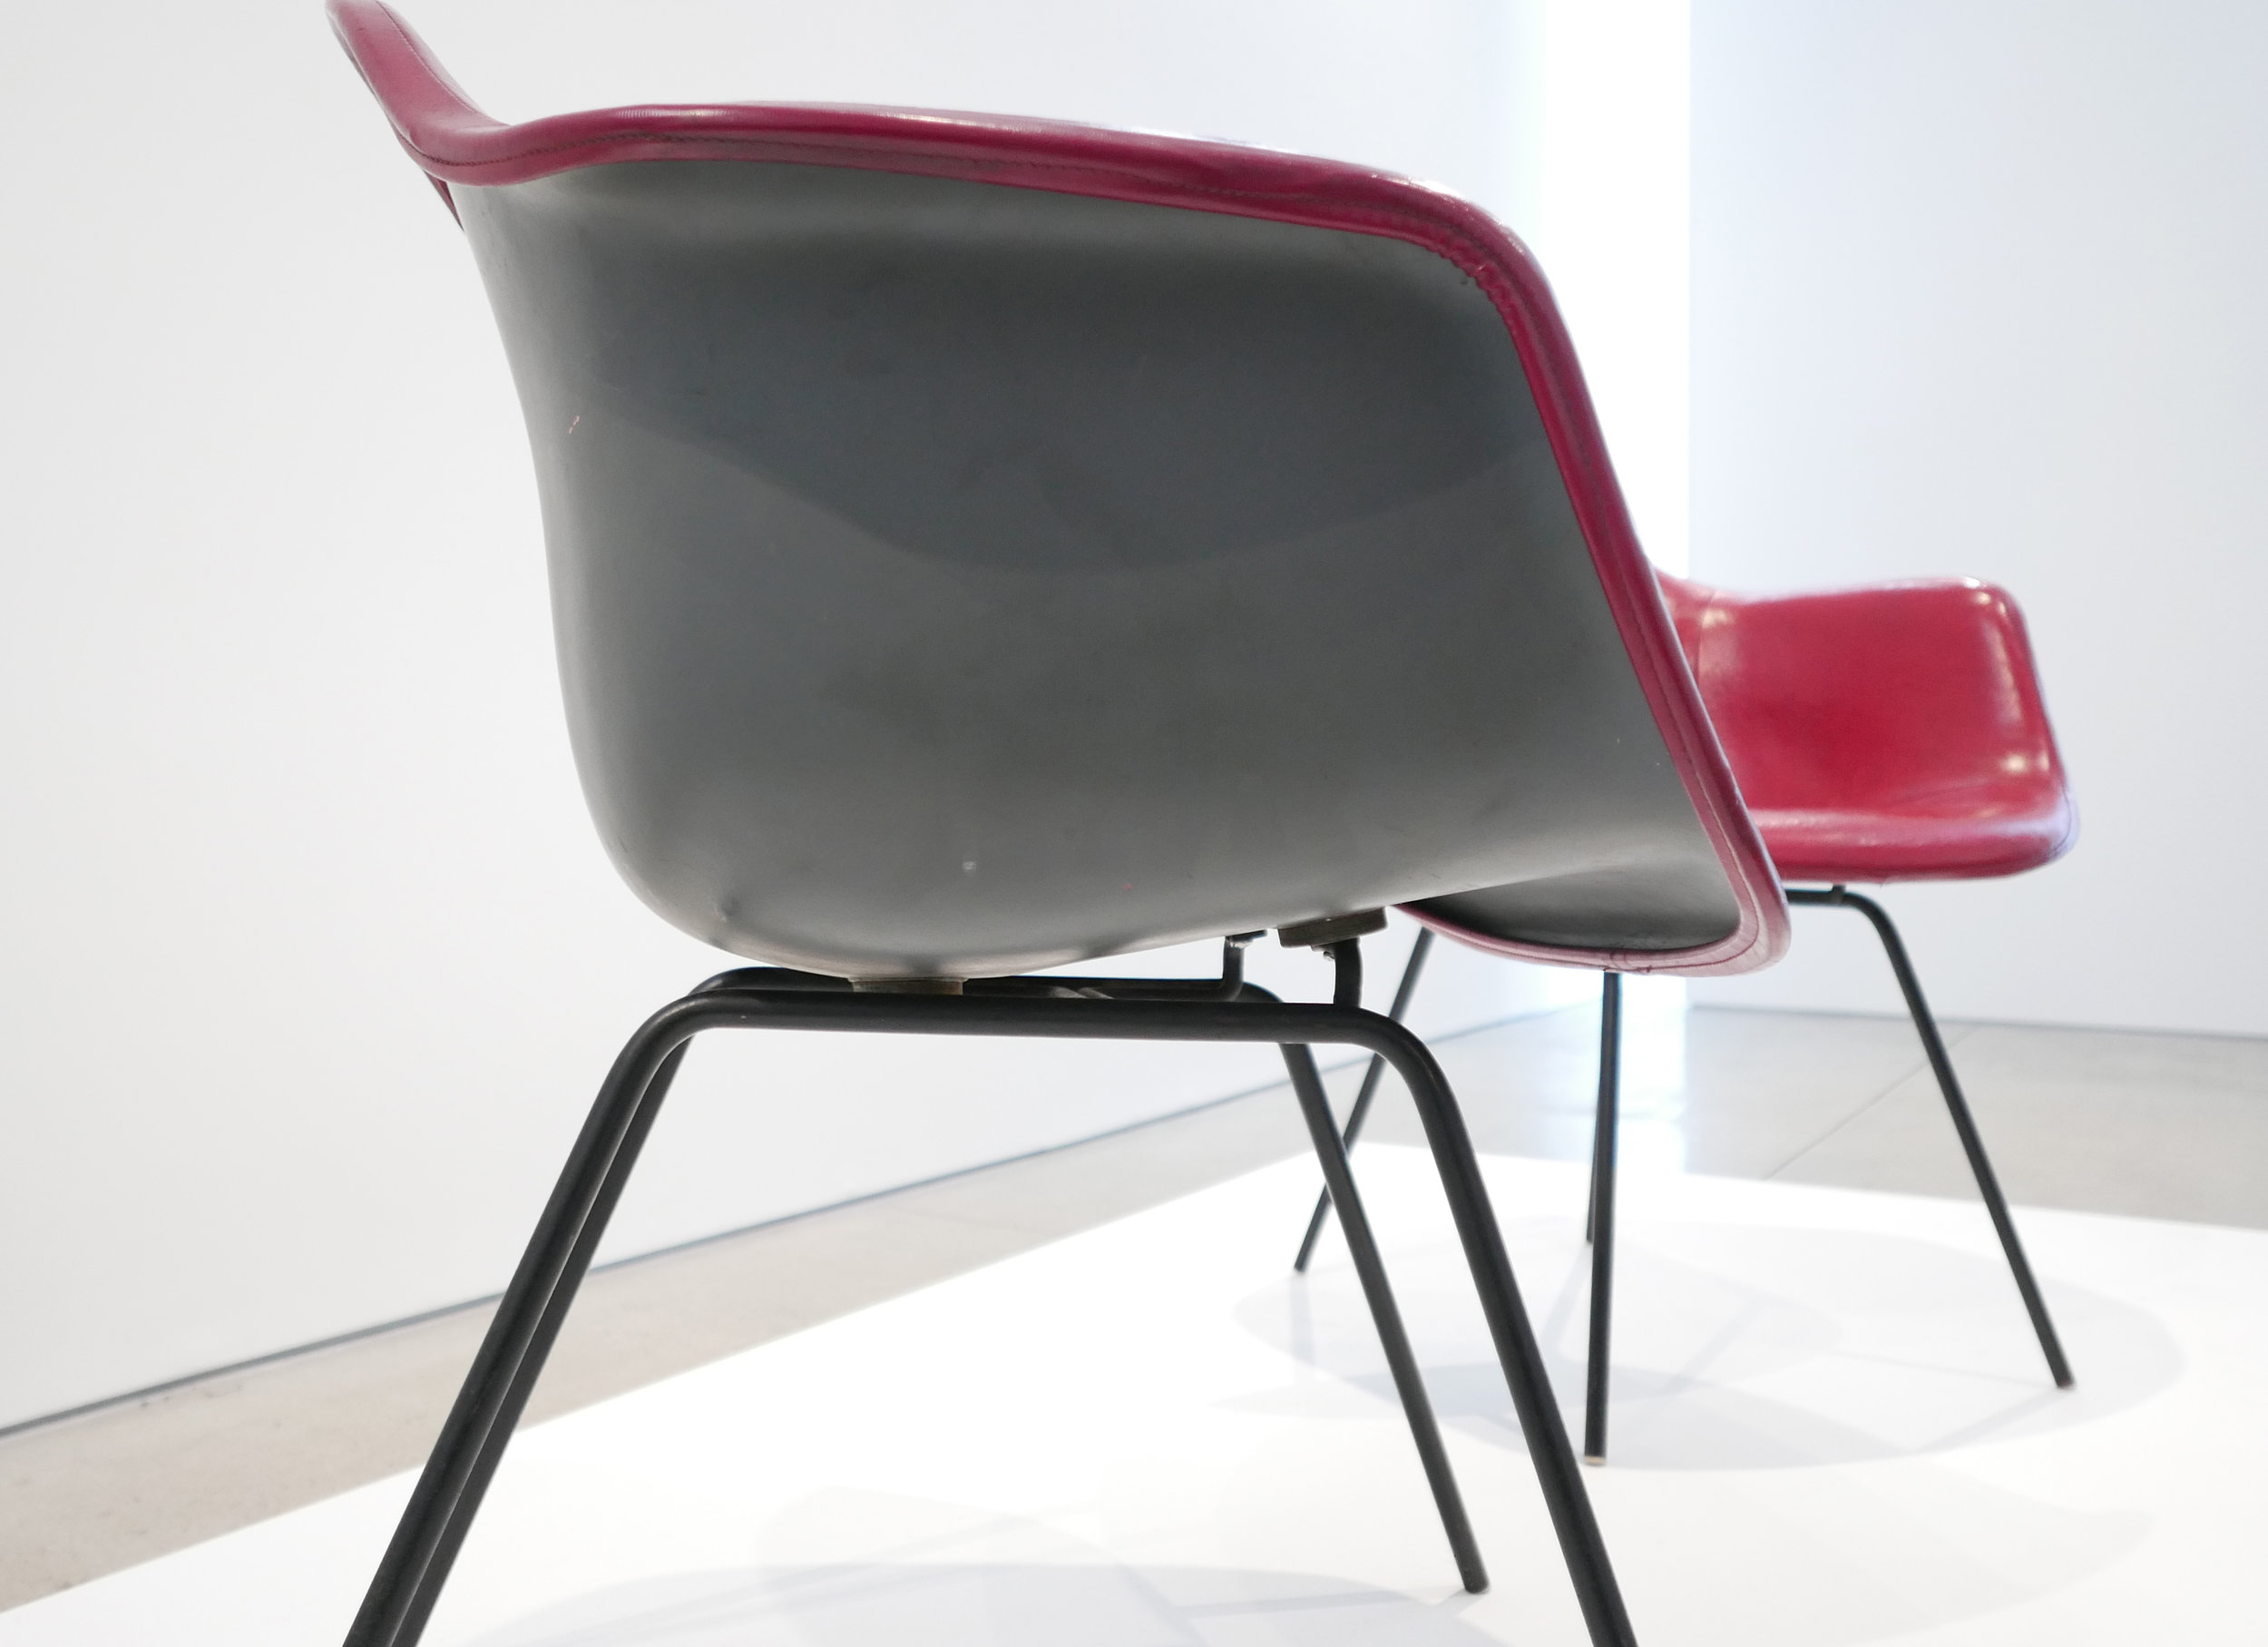 7. Ray and Charles Eames, 'DAX' Chairs, 1954, molded and lacquered fiberglass, vinyl, enameled steel, plastic, 31 x 25.5 x 25 inches.jpg